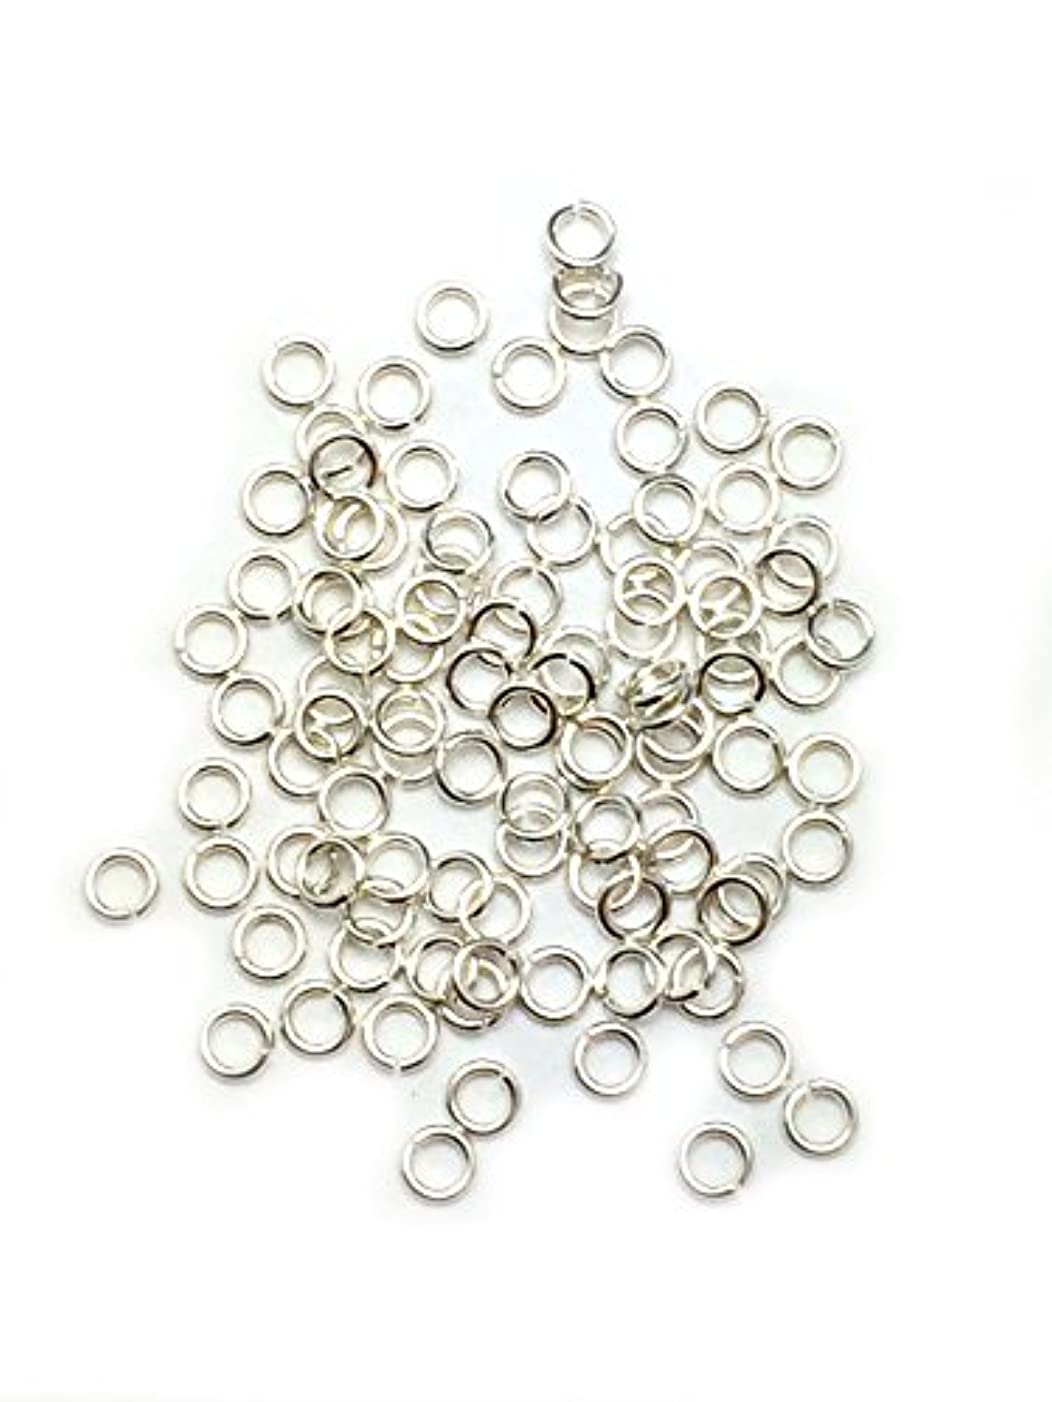 100 Sterling Silver Round Open Jump Rings 2.6mm 24 Gauge by Craft Wire